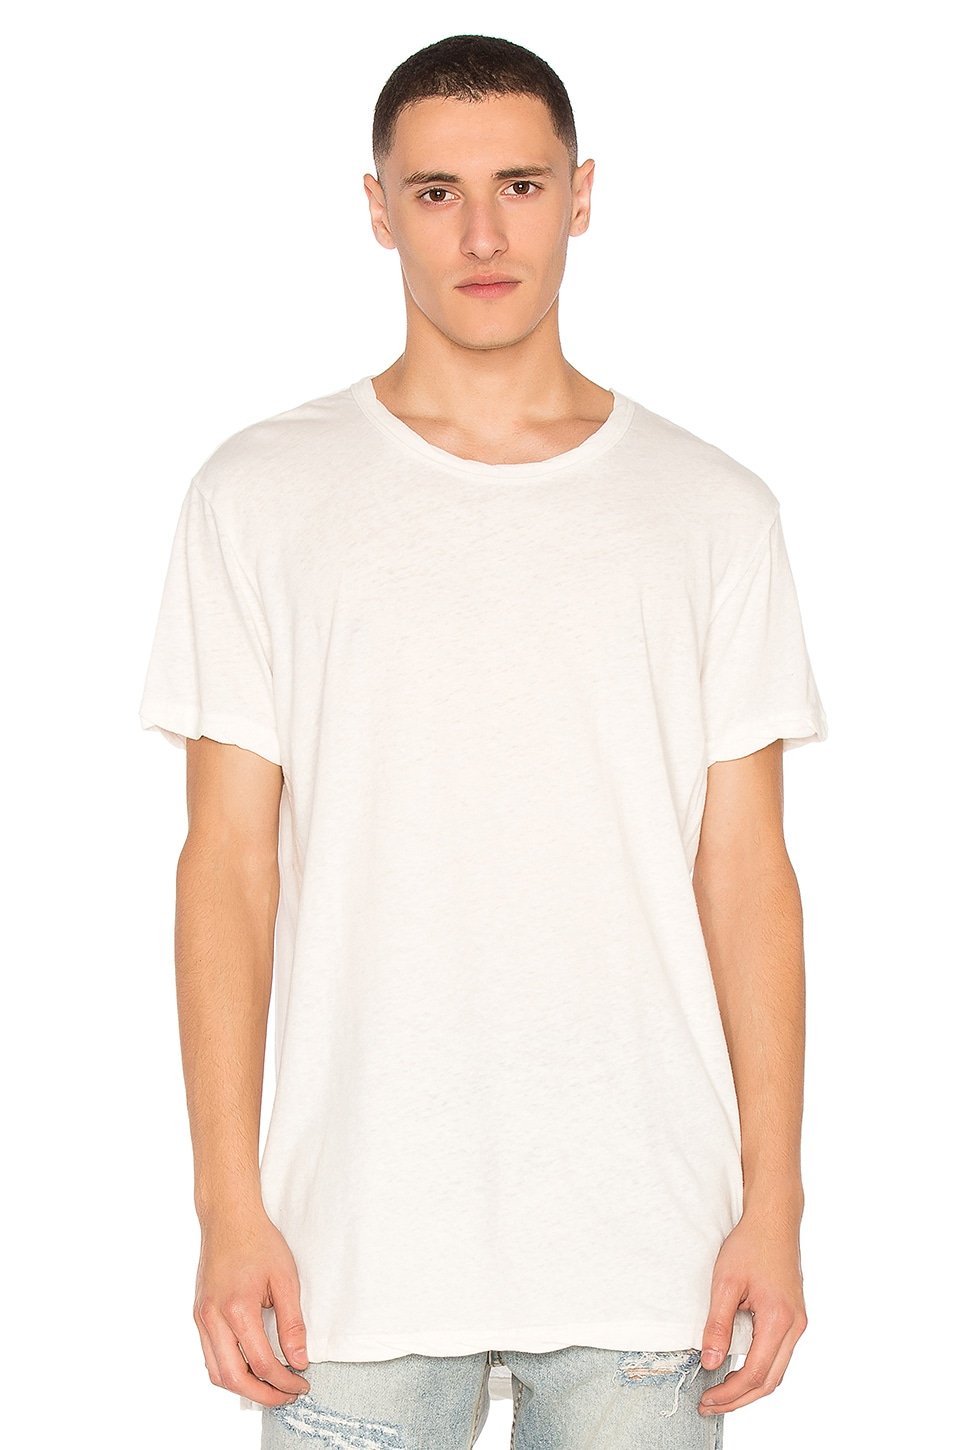 Vices S/S Tee